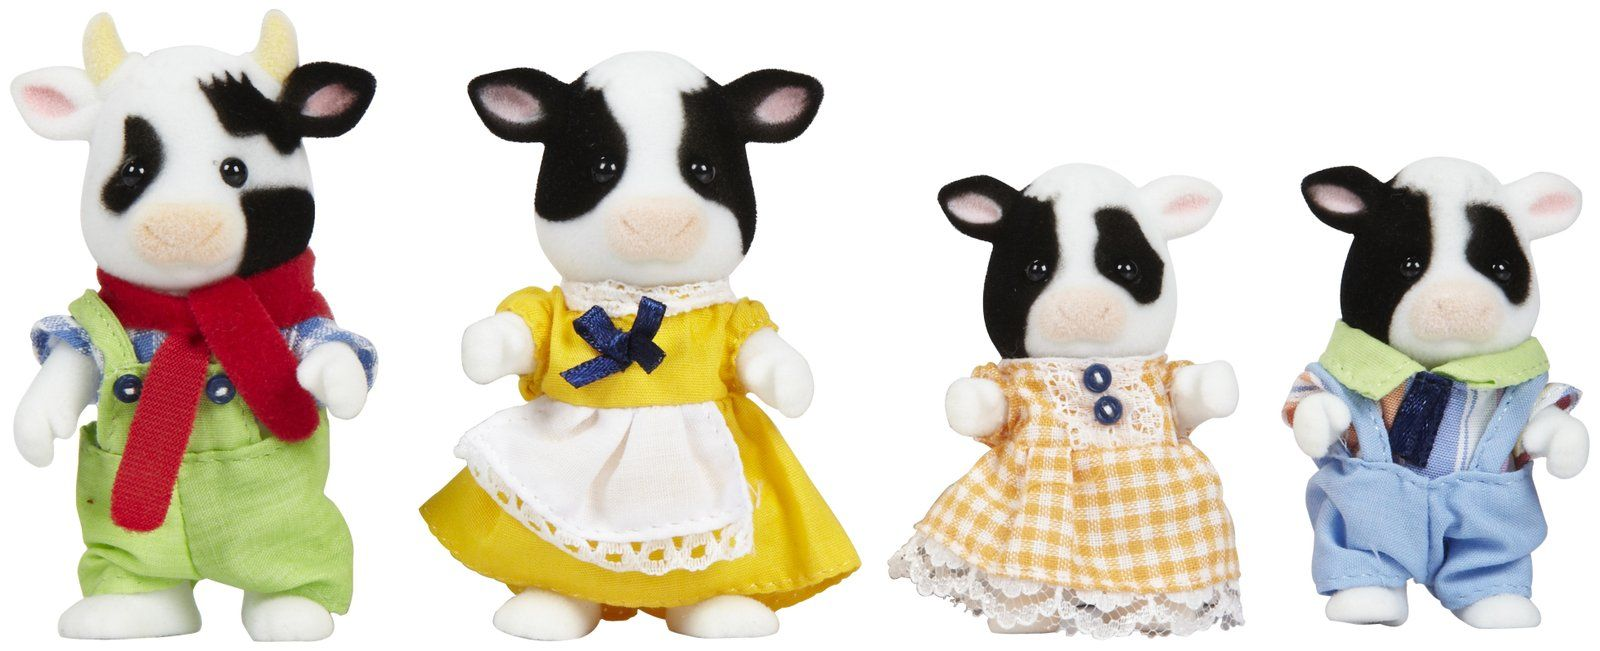 Calico Critters Friesian Cow Family Free Shipping